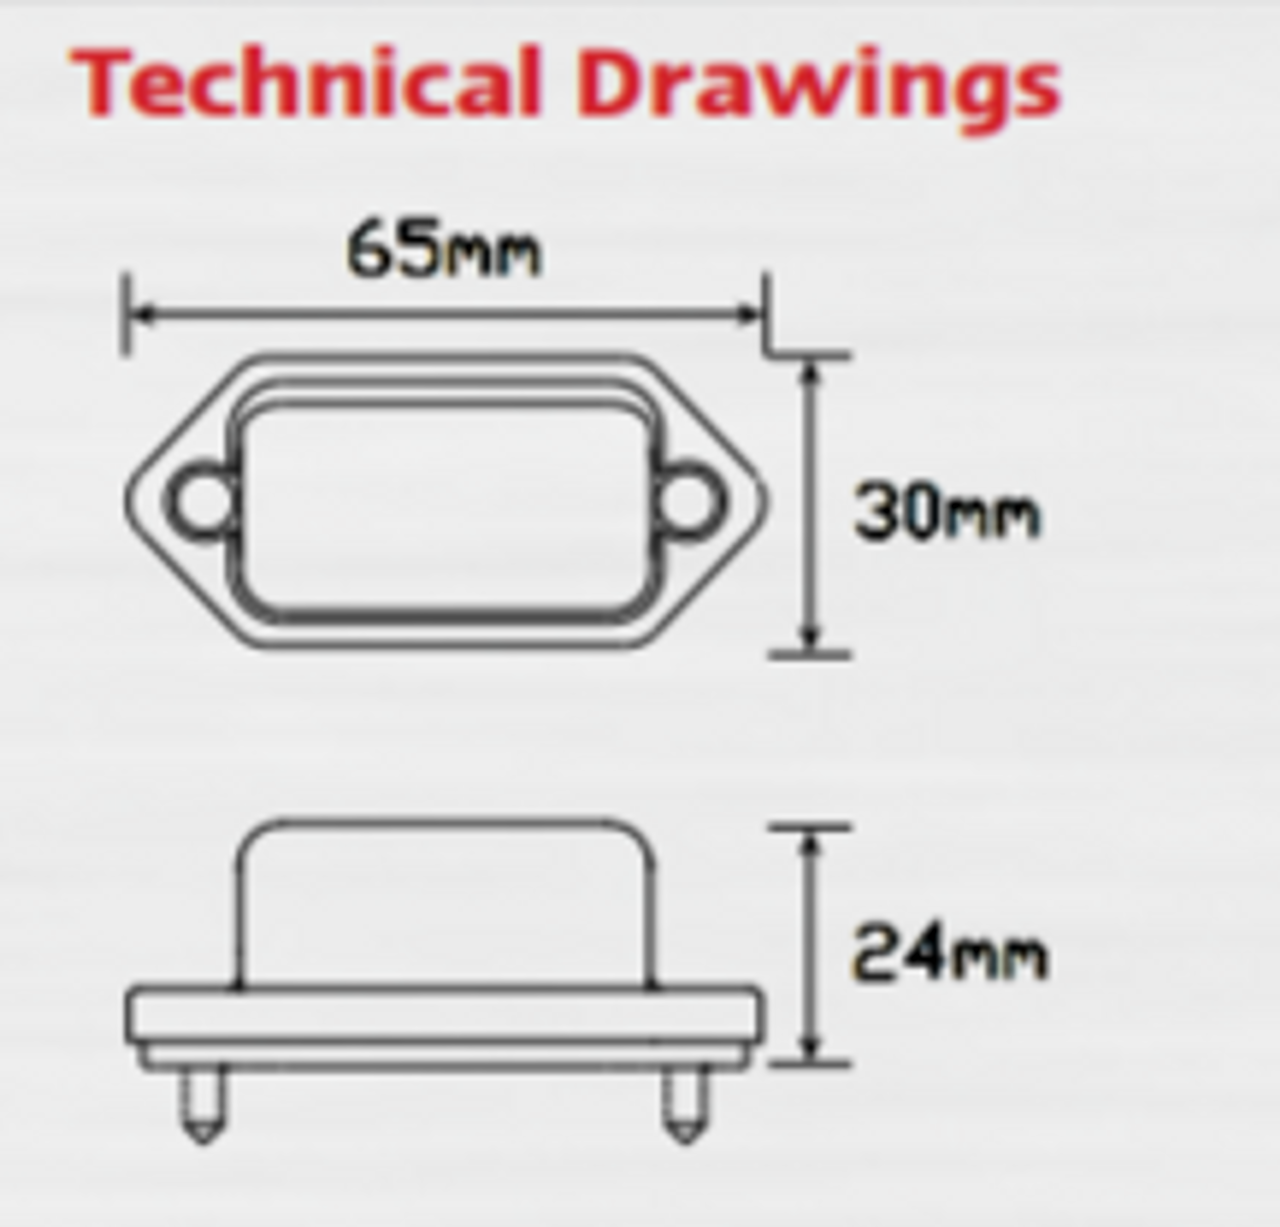 Line Drawing - 30CLM - Licence Plate Lamp with Chrome Base Compact Design, Low Profile, Multi-Volt 12v & 24v Twin Pack. AL. Ultimate LED.